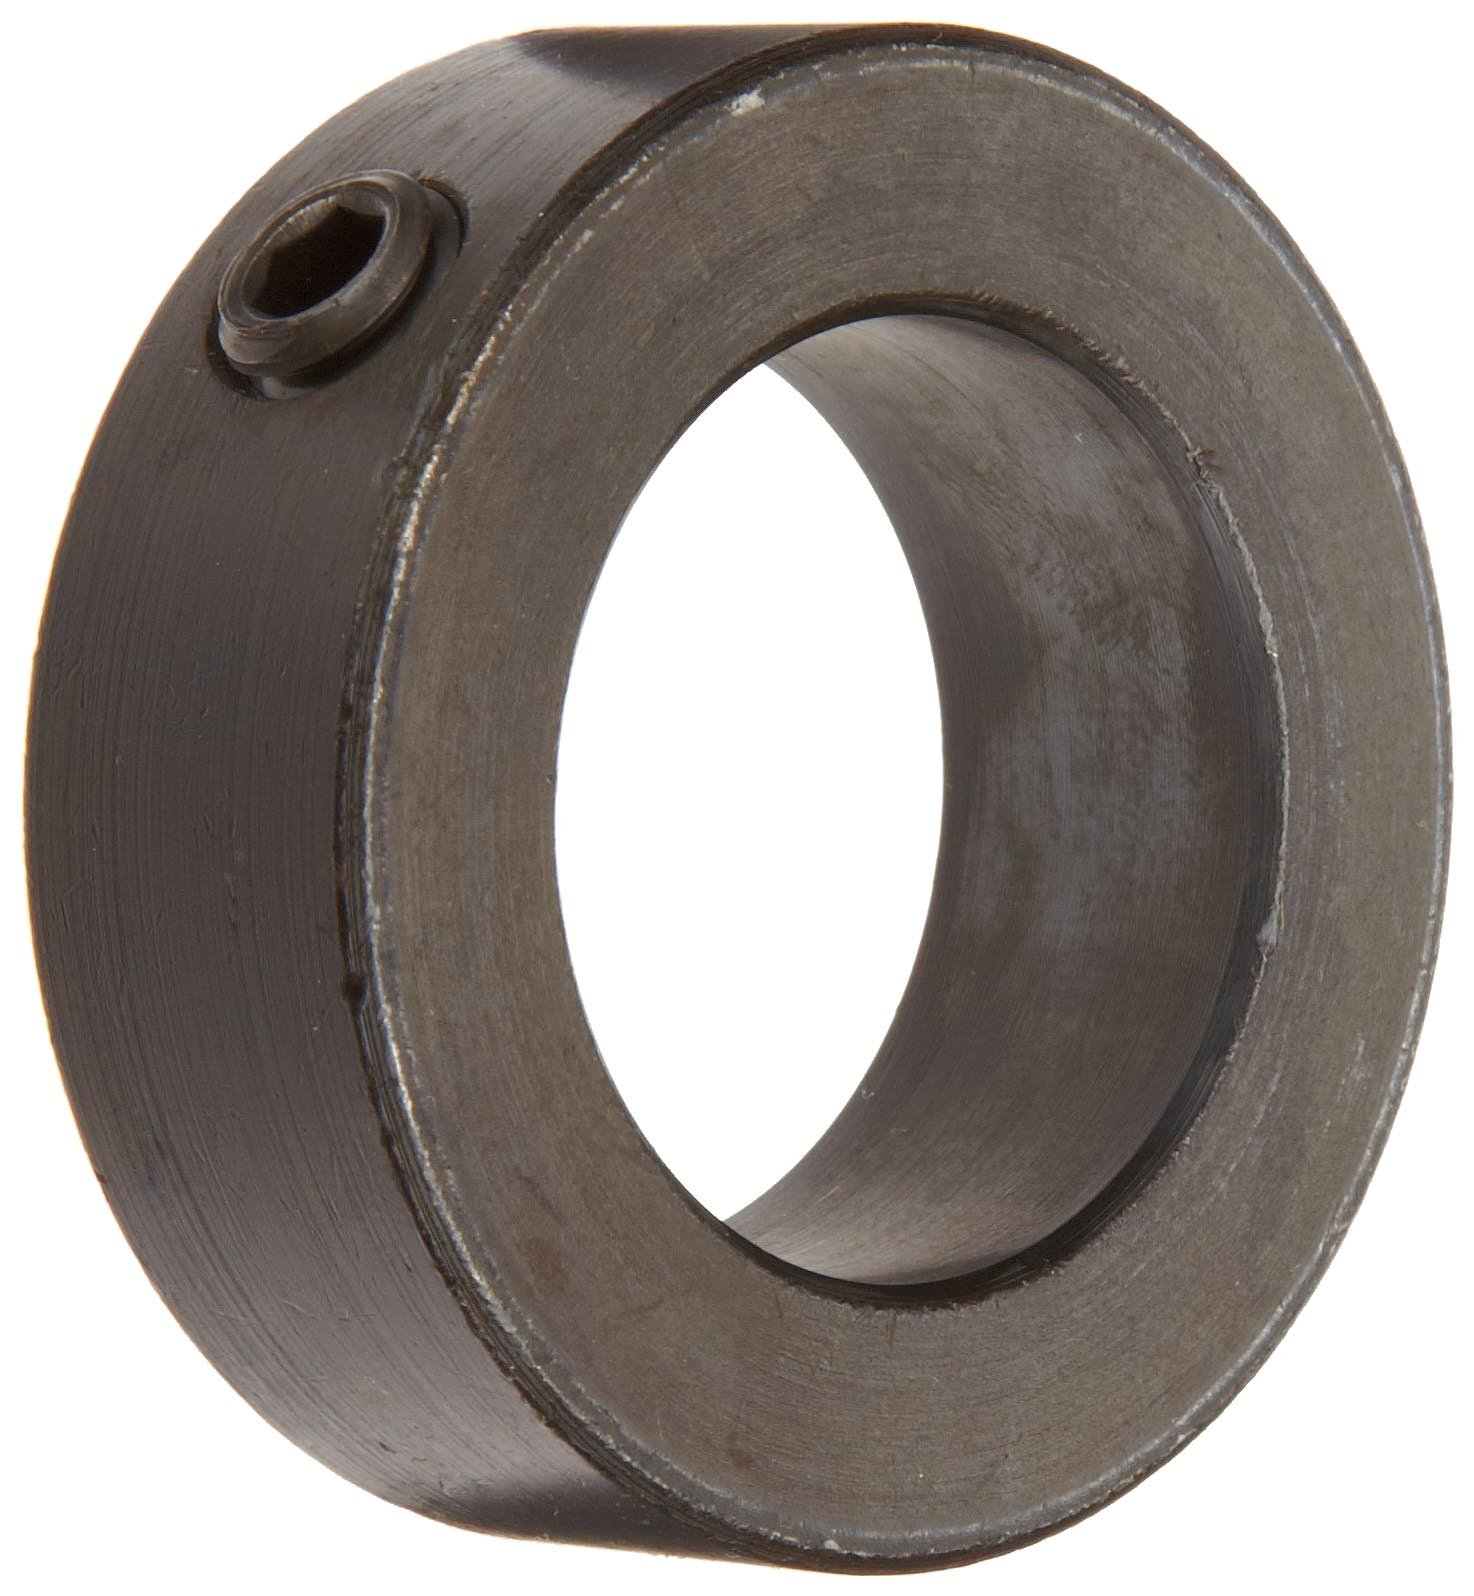 """Climax Metal C-100-BO Shaft Collar, One Piece, Set Screw Style, Black Oxide Plating, Steel, 1"""" Bore, 1-1/2"""" OD, 5/8"""" Width, With 5/16-24 x 1/4 Set Screw"""